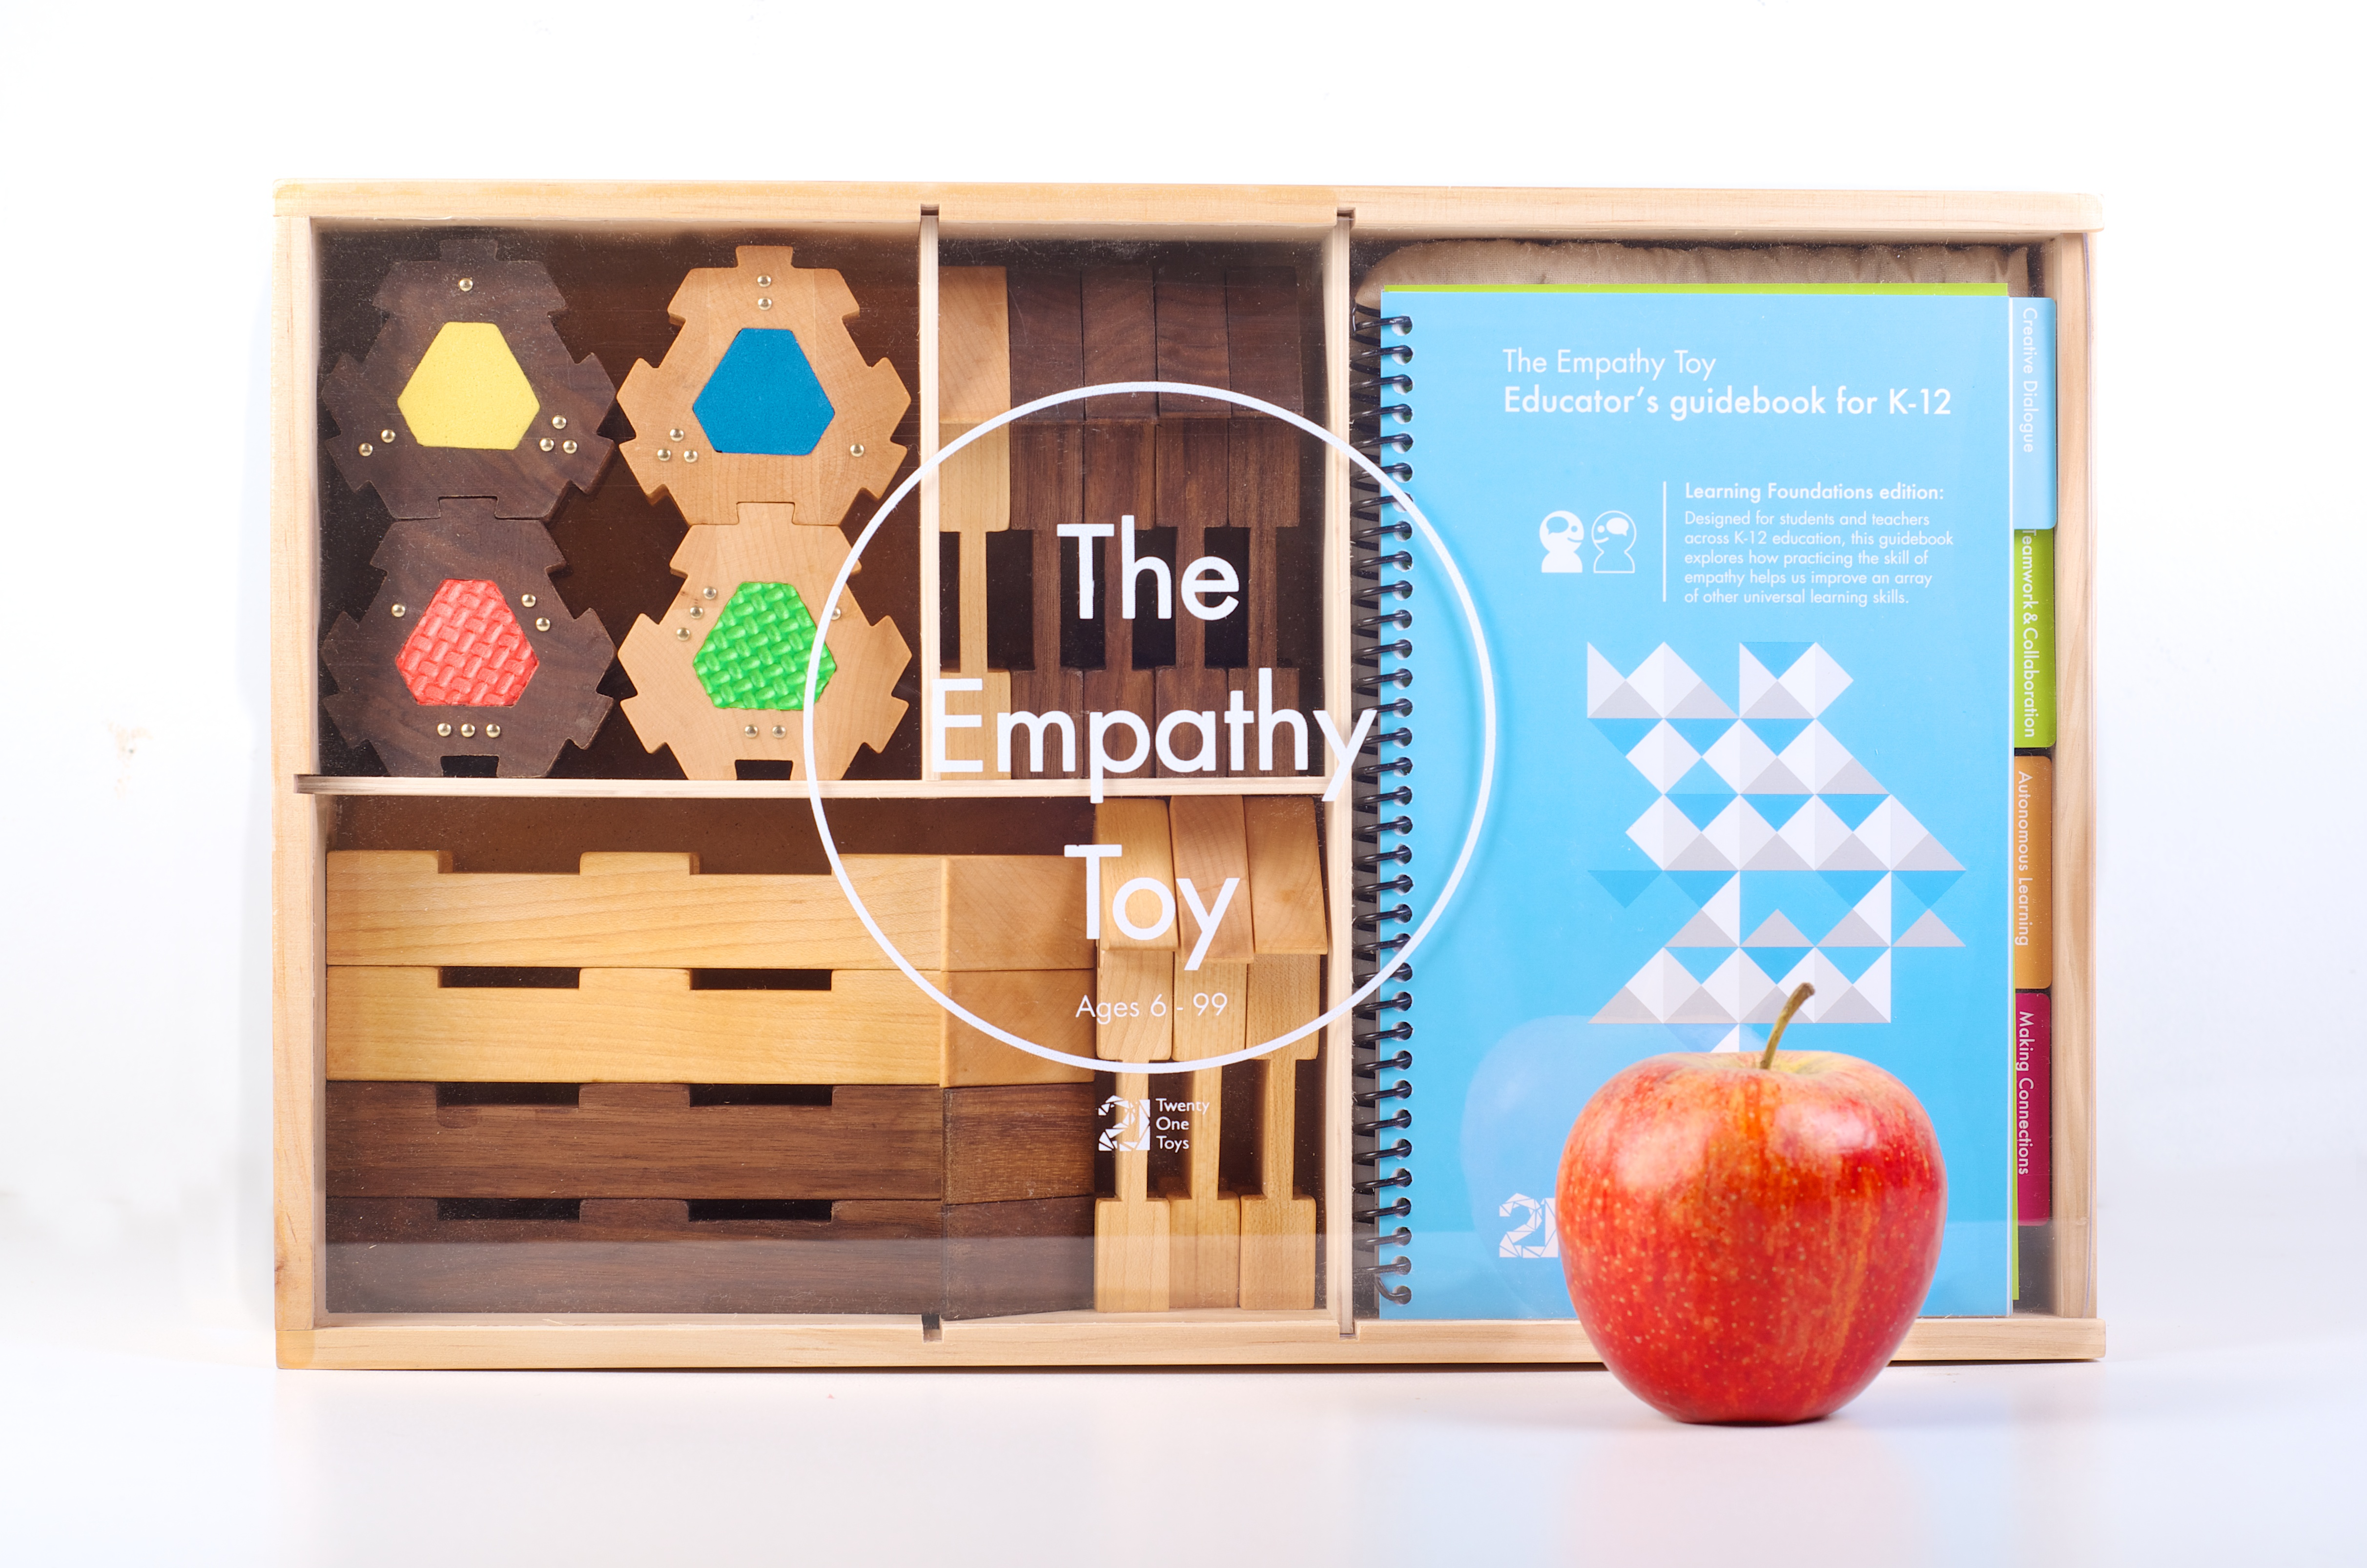 The Empathy Toy builds trust, improves communication and is an amazing tool to help people think differently.